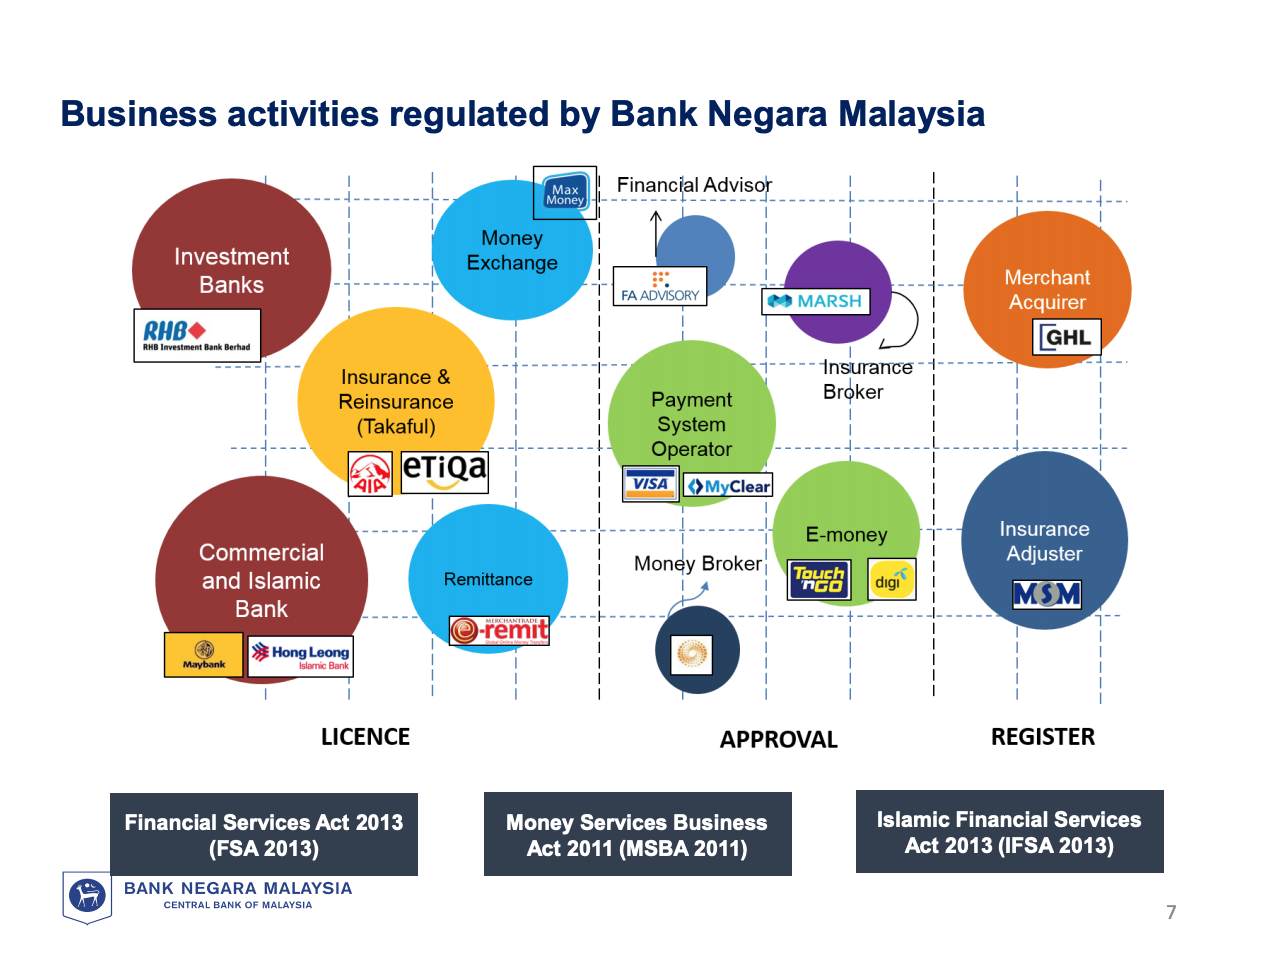 Fintech Regulation Malaysia: Business activities regulated by Bank Negara Malaysia